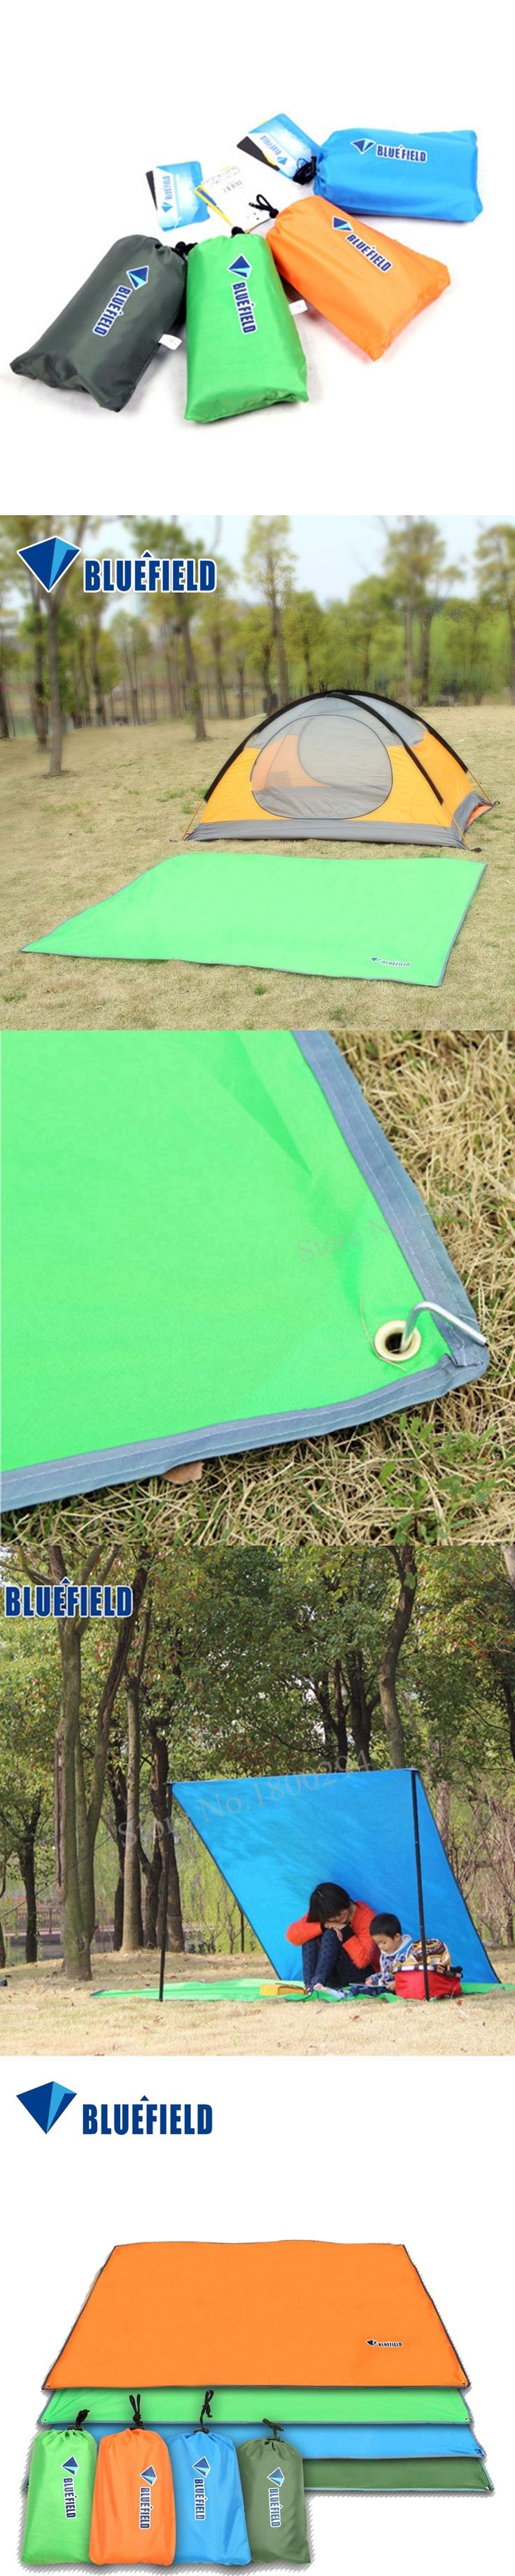 Outdoor Sun Shelter Waterproof Beach Sun Shade Camping Picnic Mat Picnic Blanket Tent Pergola Awning Canopy Tarp 4Size 4Color